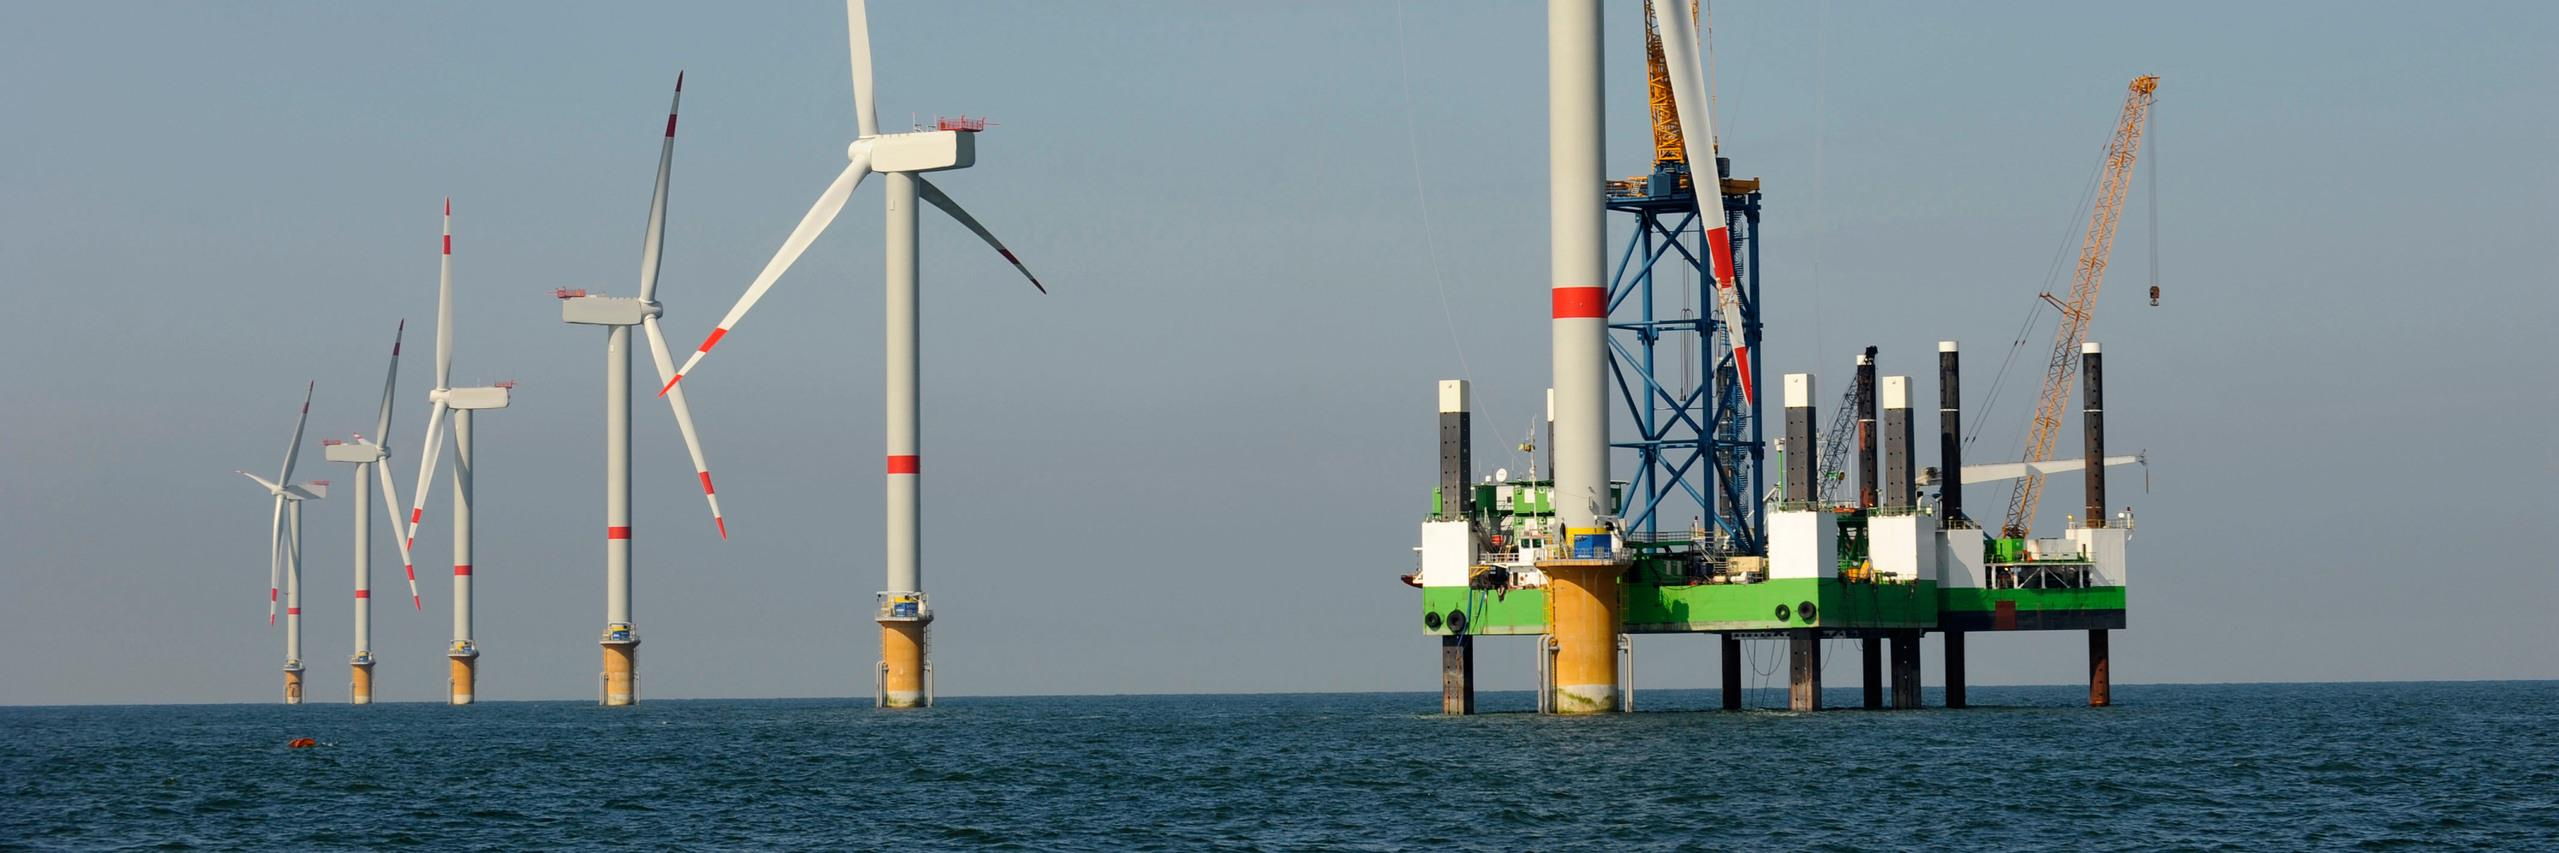 Wind turbines as part of an offshore wind farm